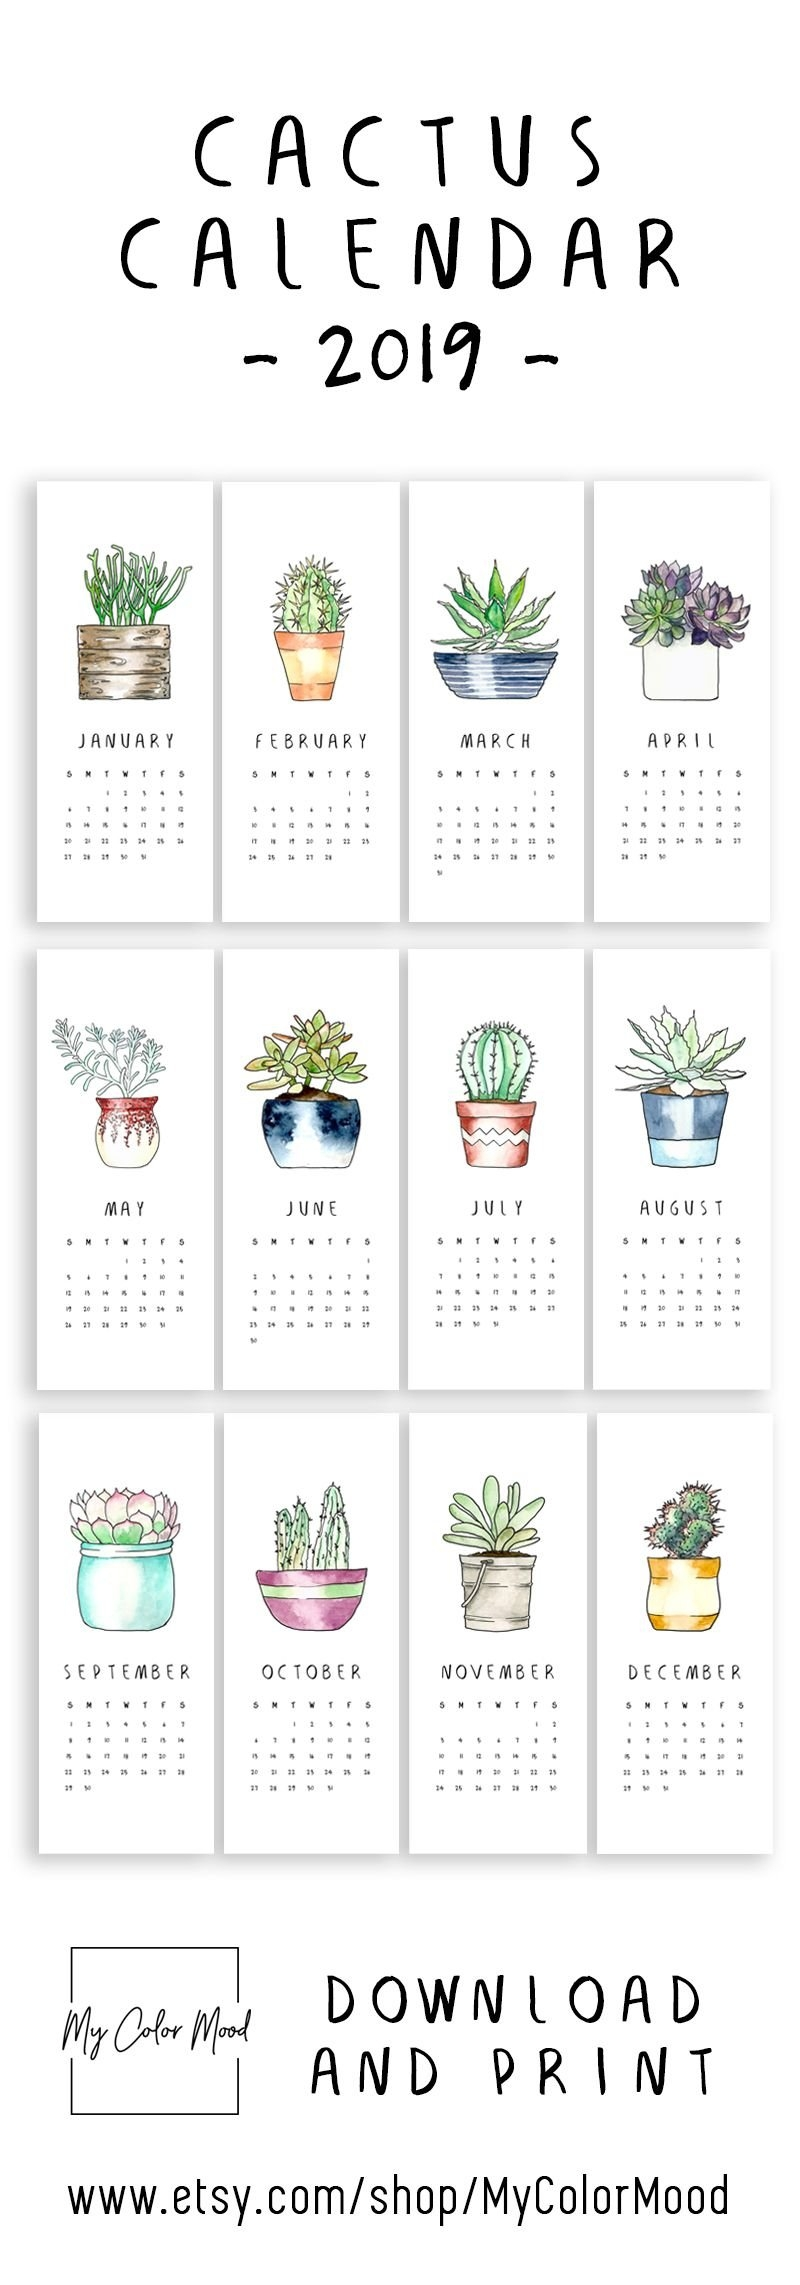 Modern Cactus Calendar 2019 For All The Succulent Lovers! These Calendar 2019 Small